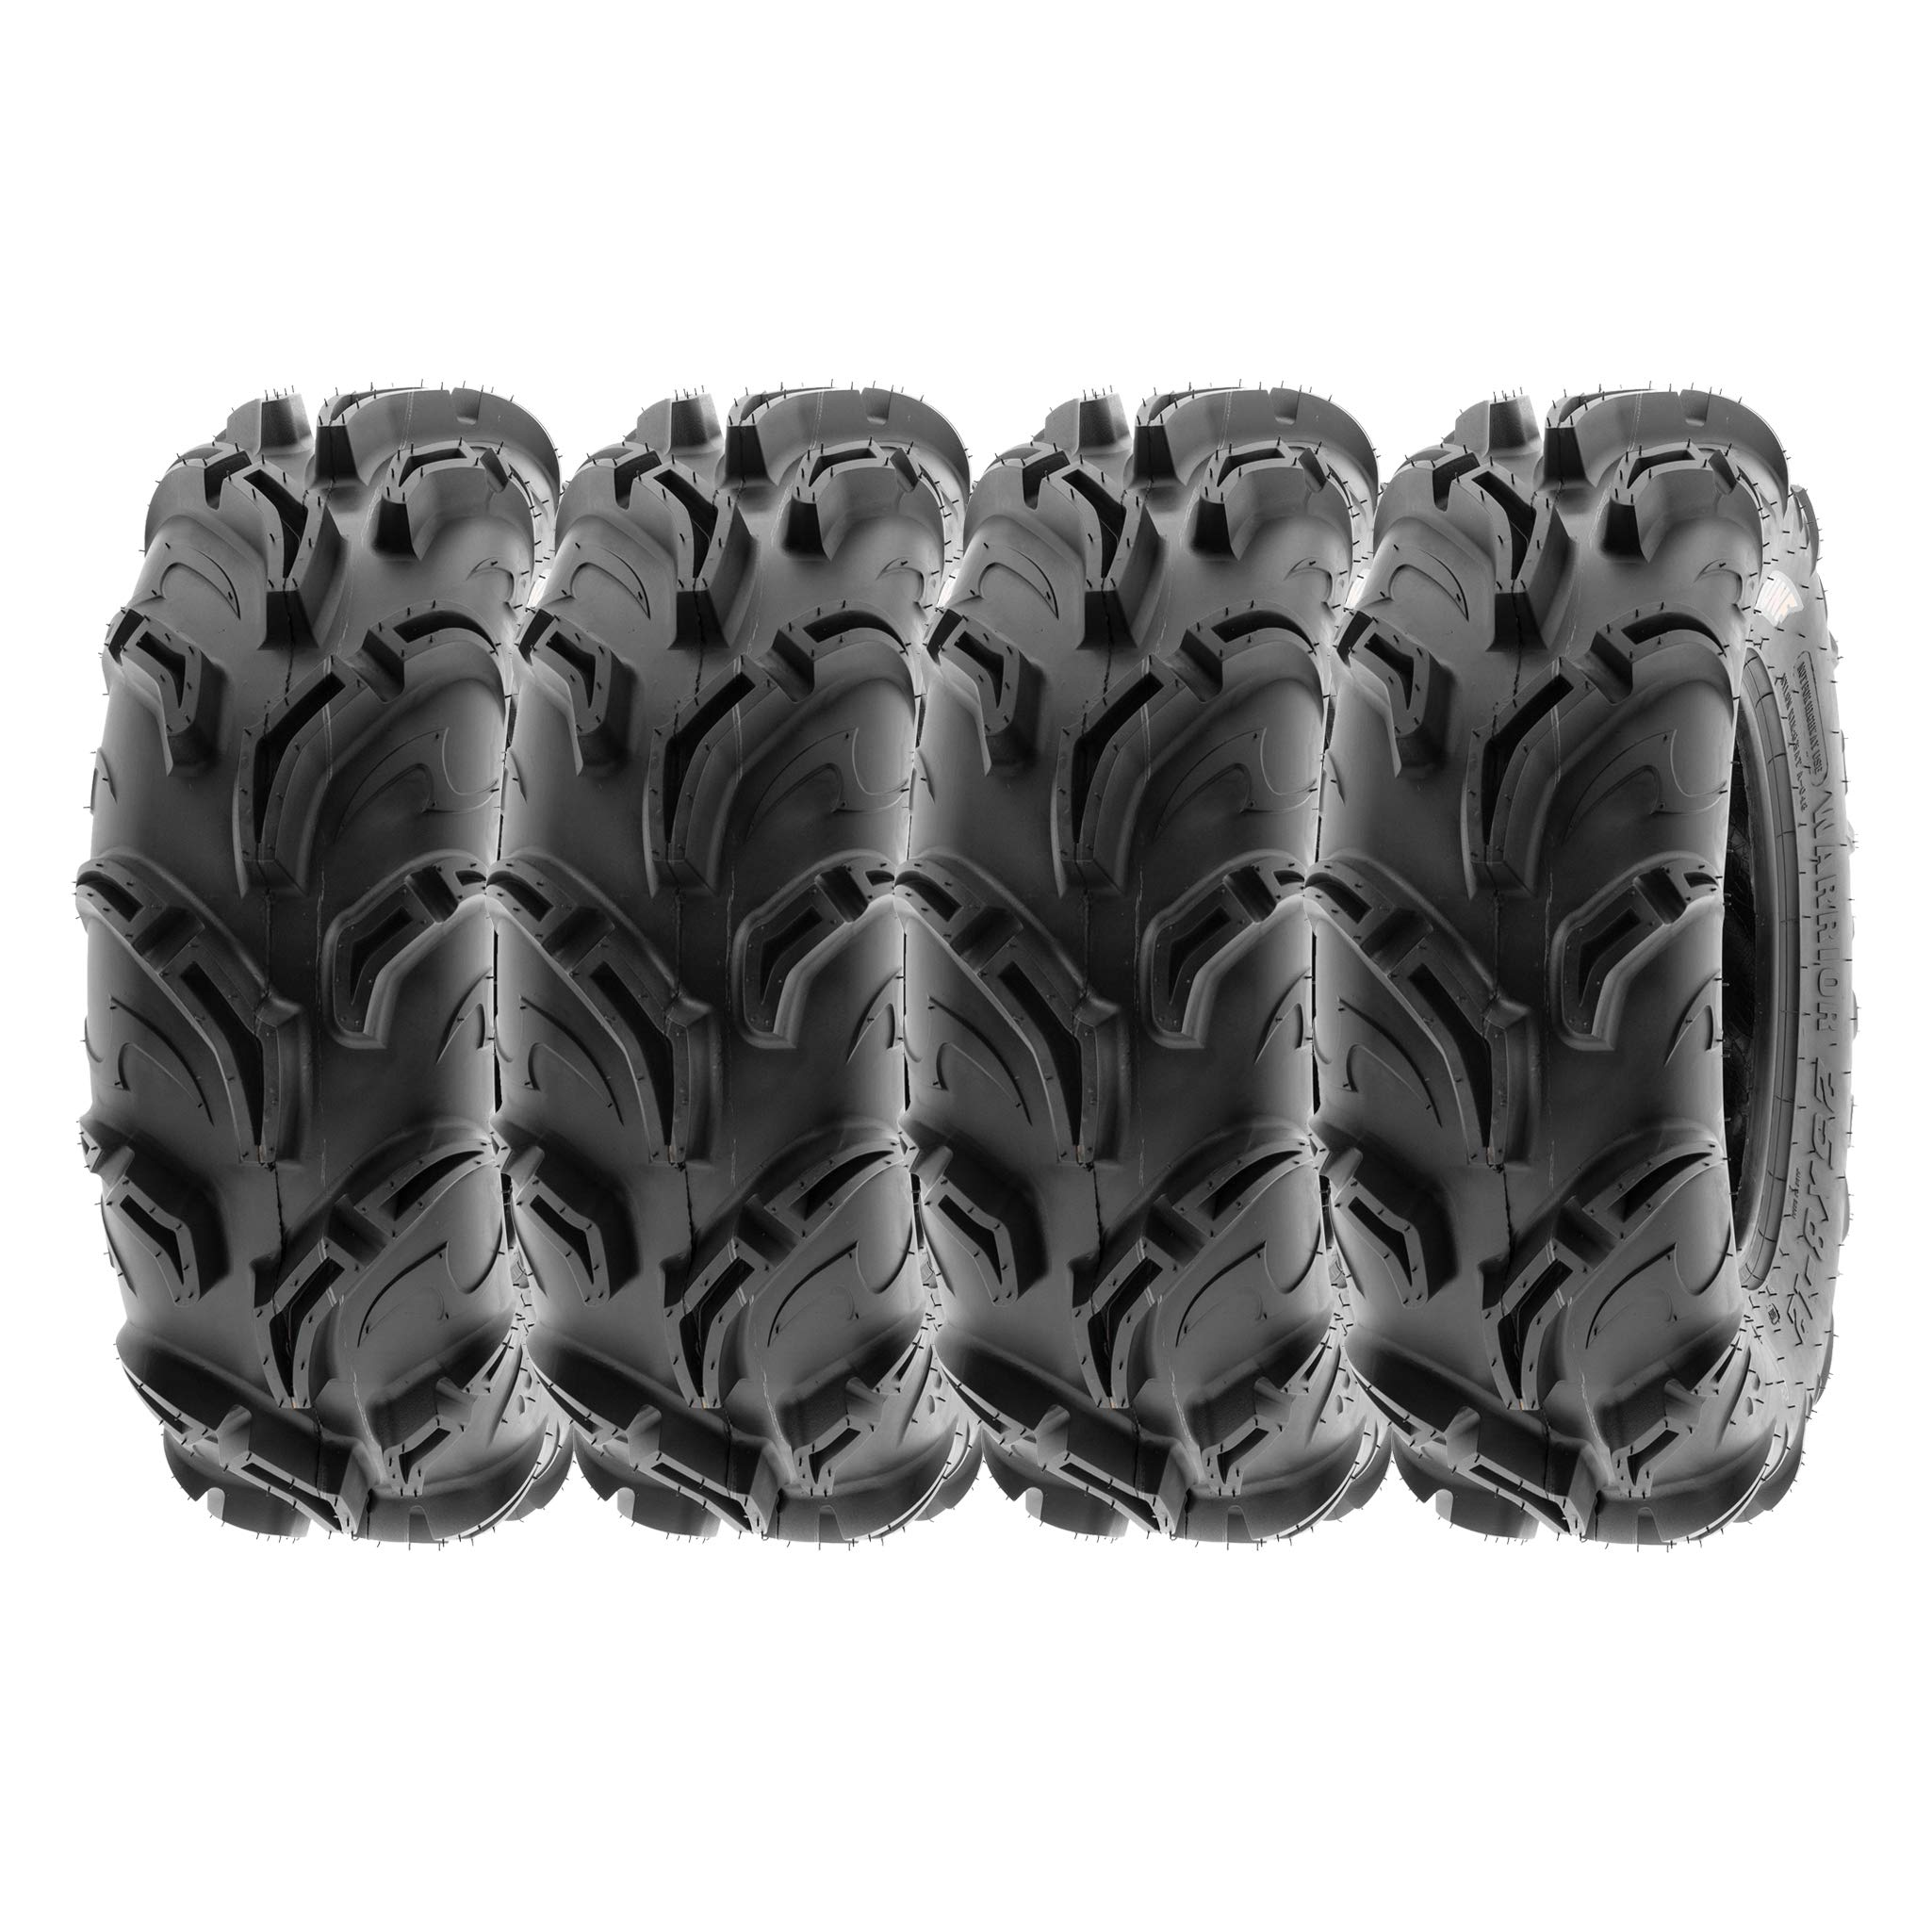 SunF Mud Trail Replacement ATV UTV 6 Ply Tires 26x9-12 26x9x12 Tubeless A048, [Set of 4]